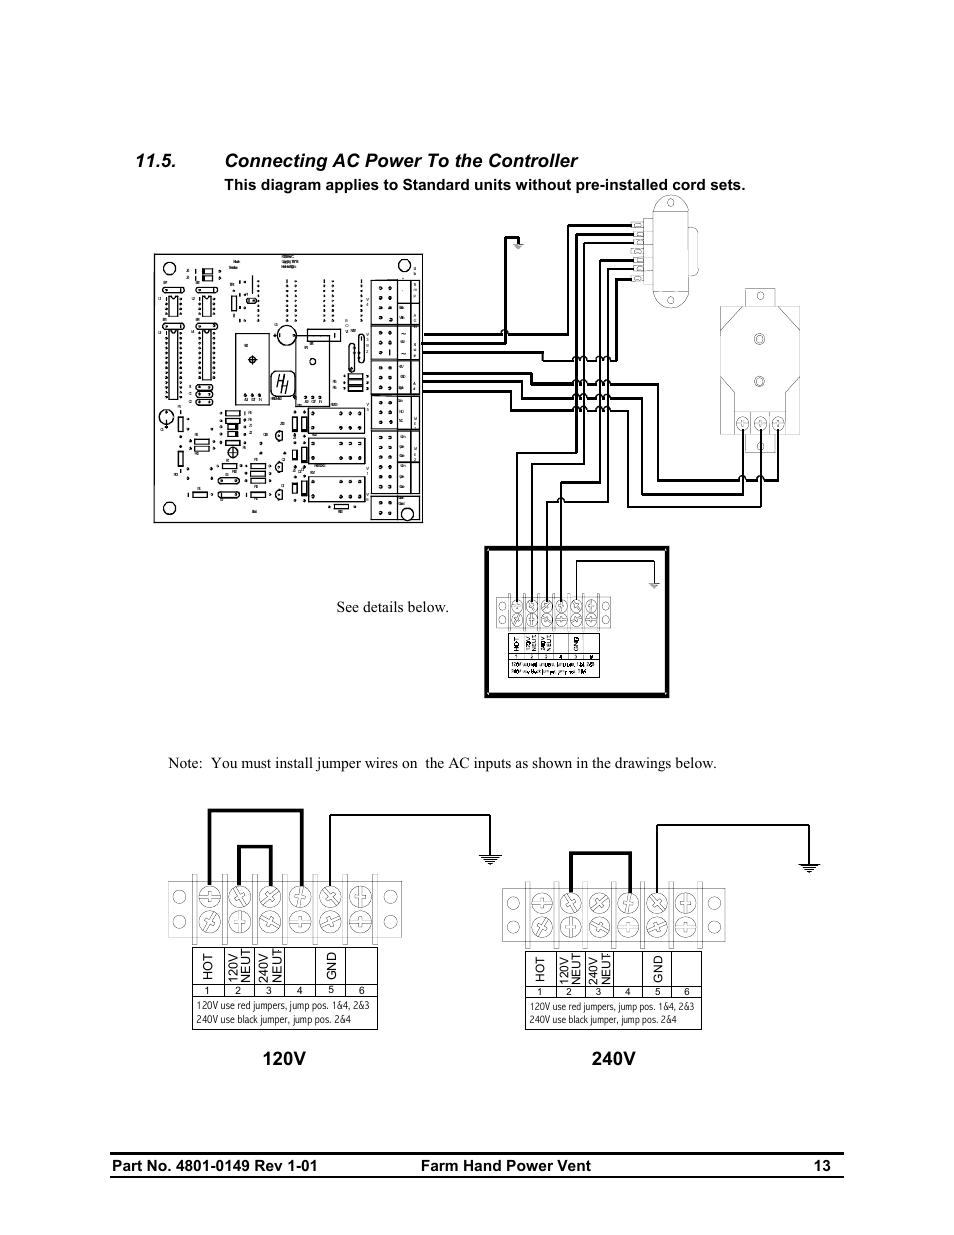 Connecting ac power to the controller, See details below